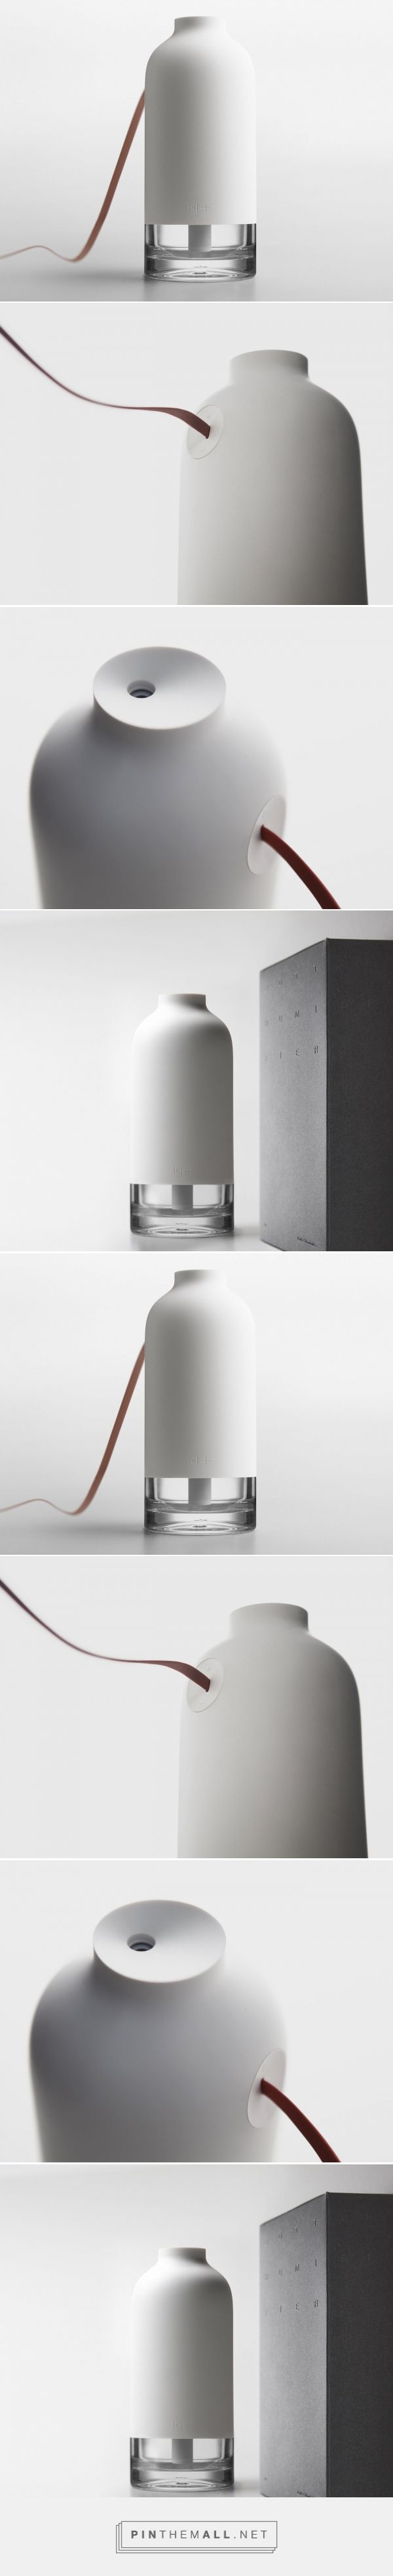 Minimally Designed USB Powered Bottle Humidifier » Review